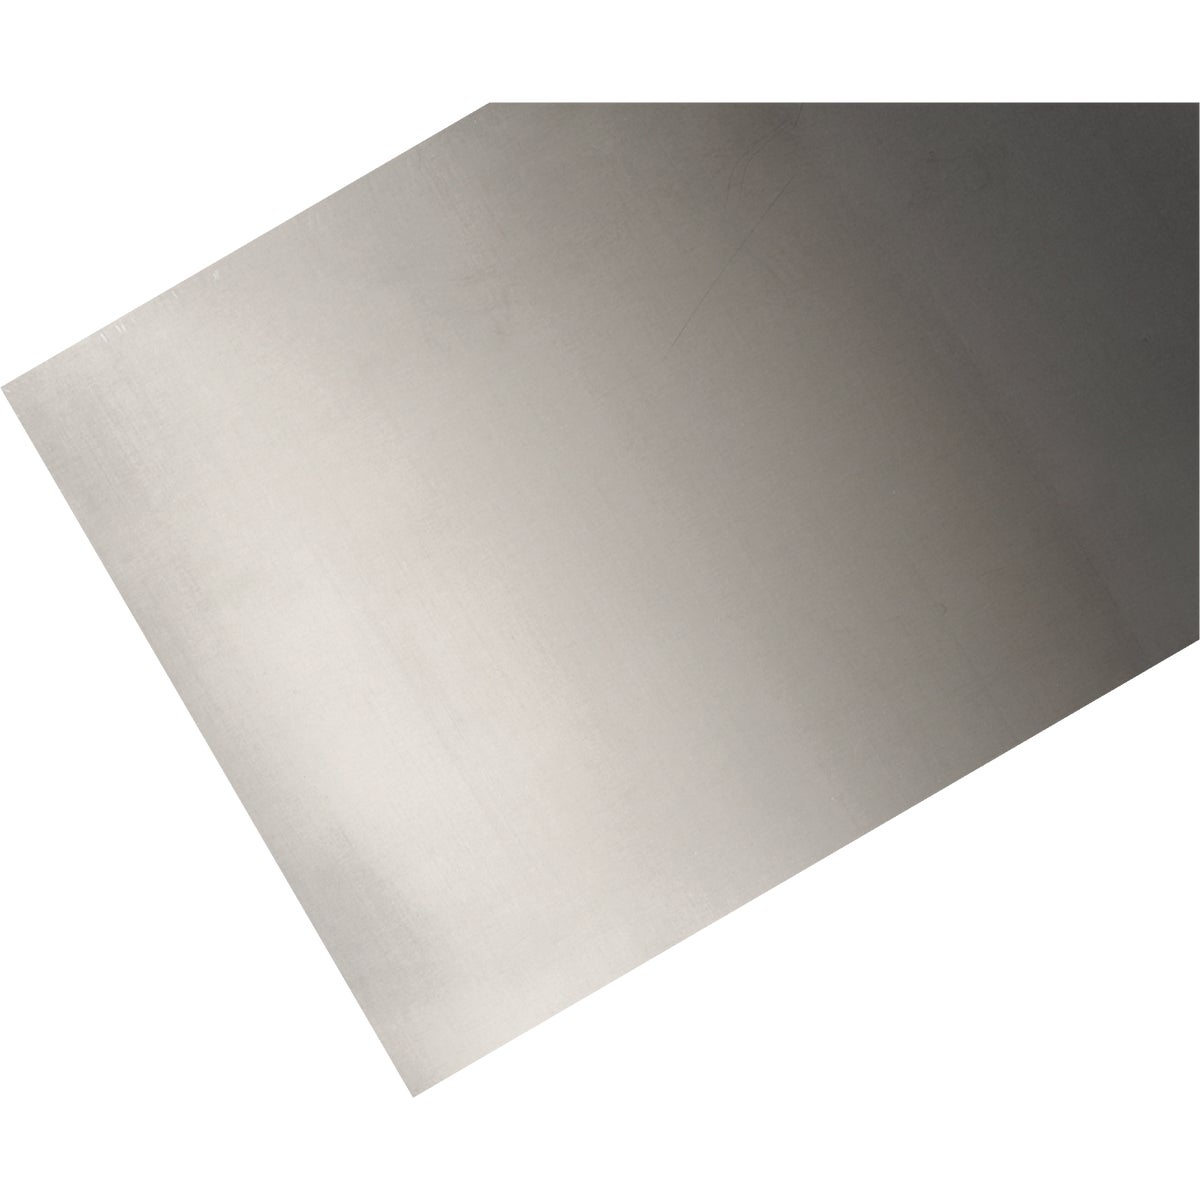 3X3 GALV STEEL SHEET